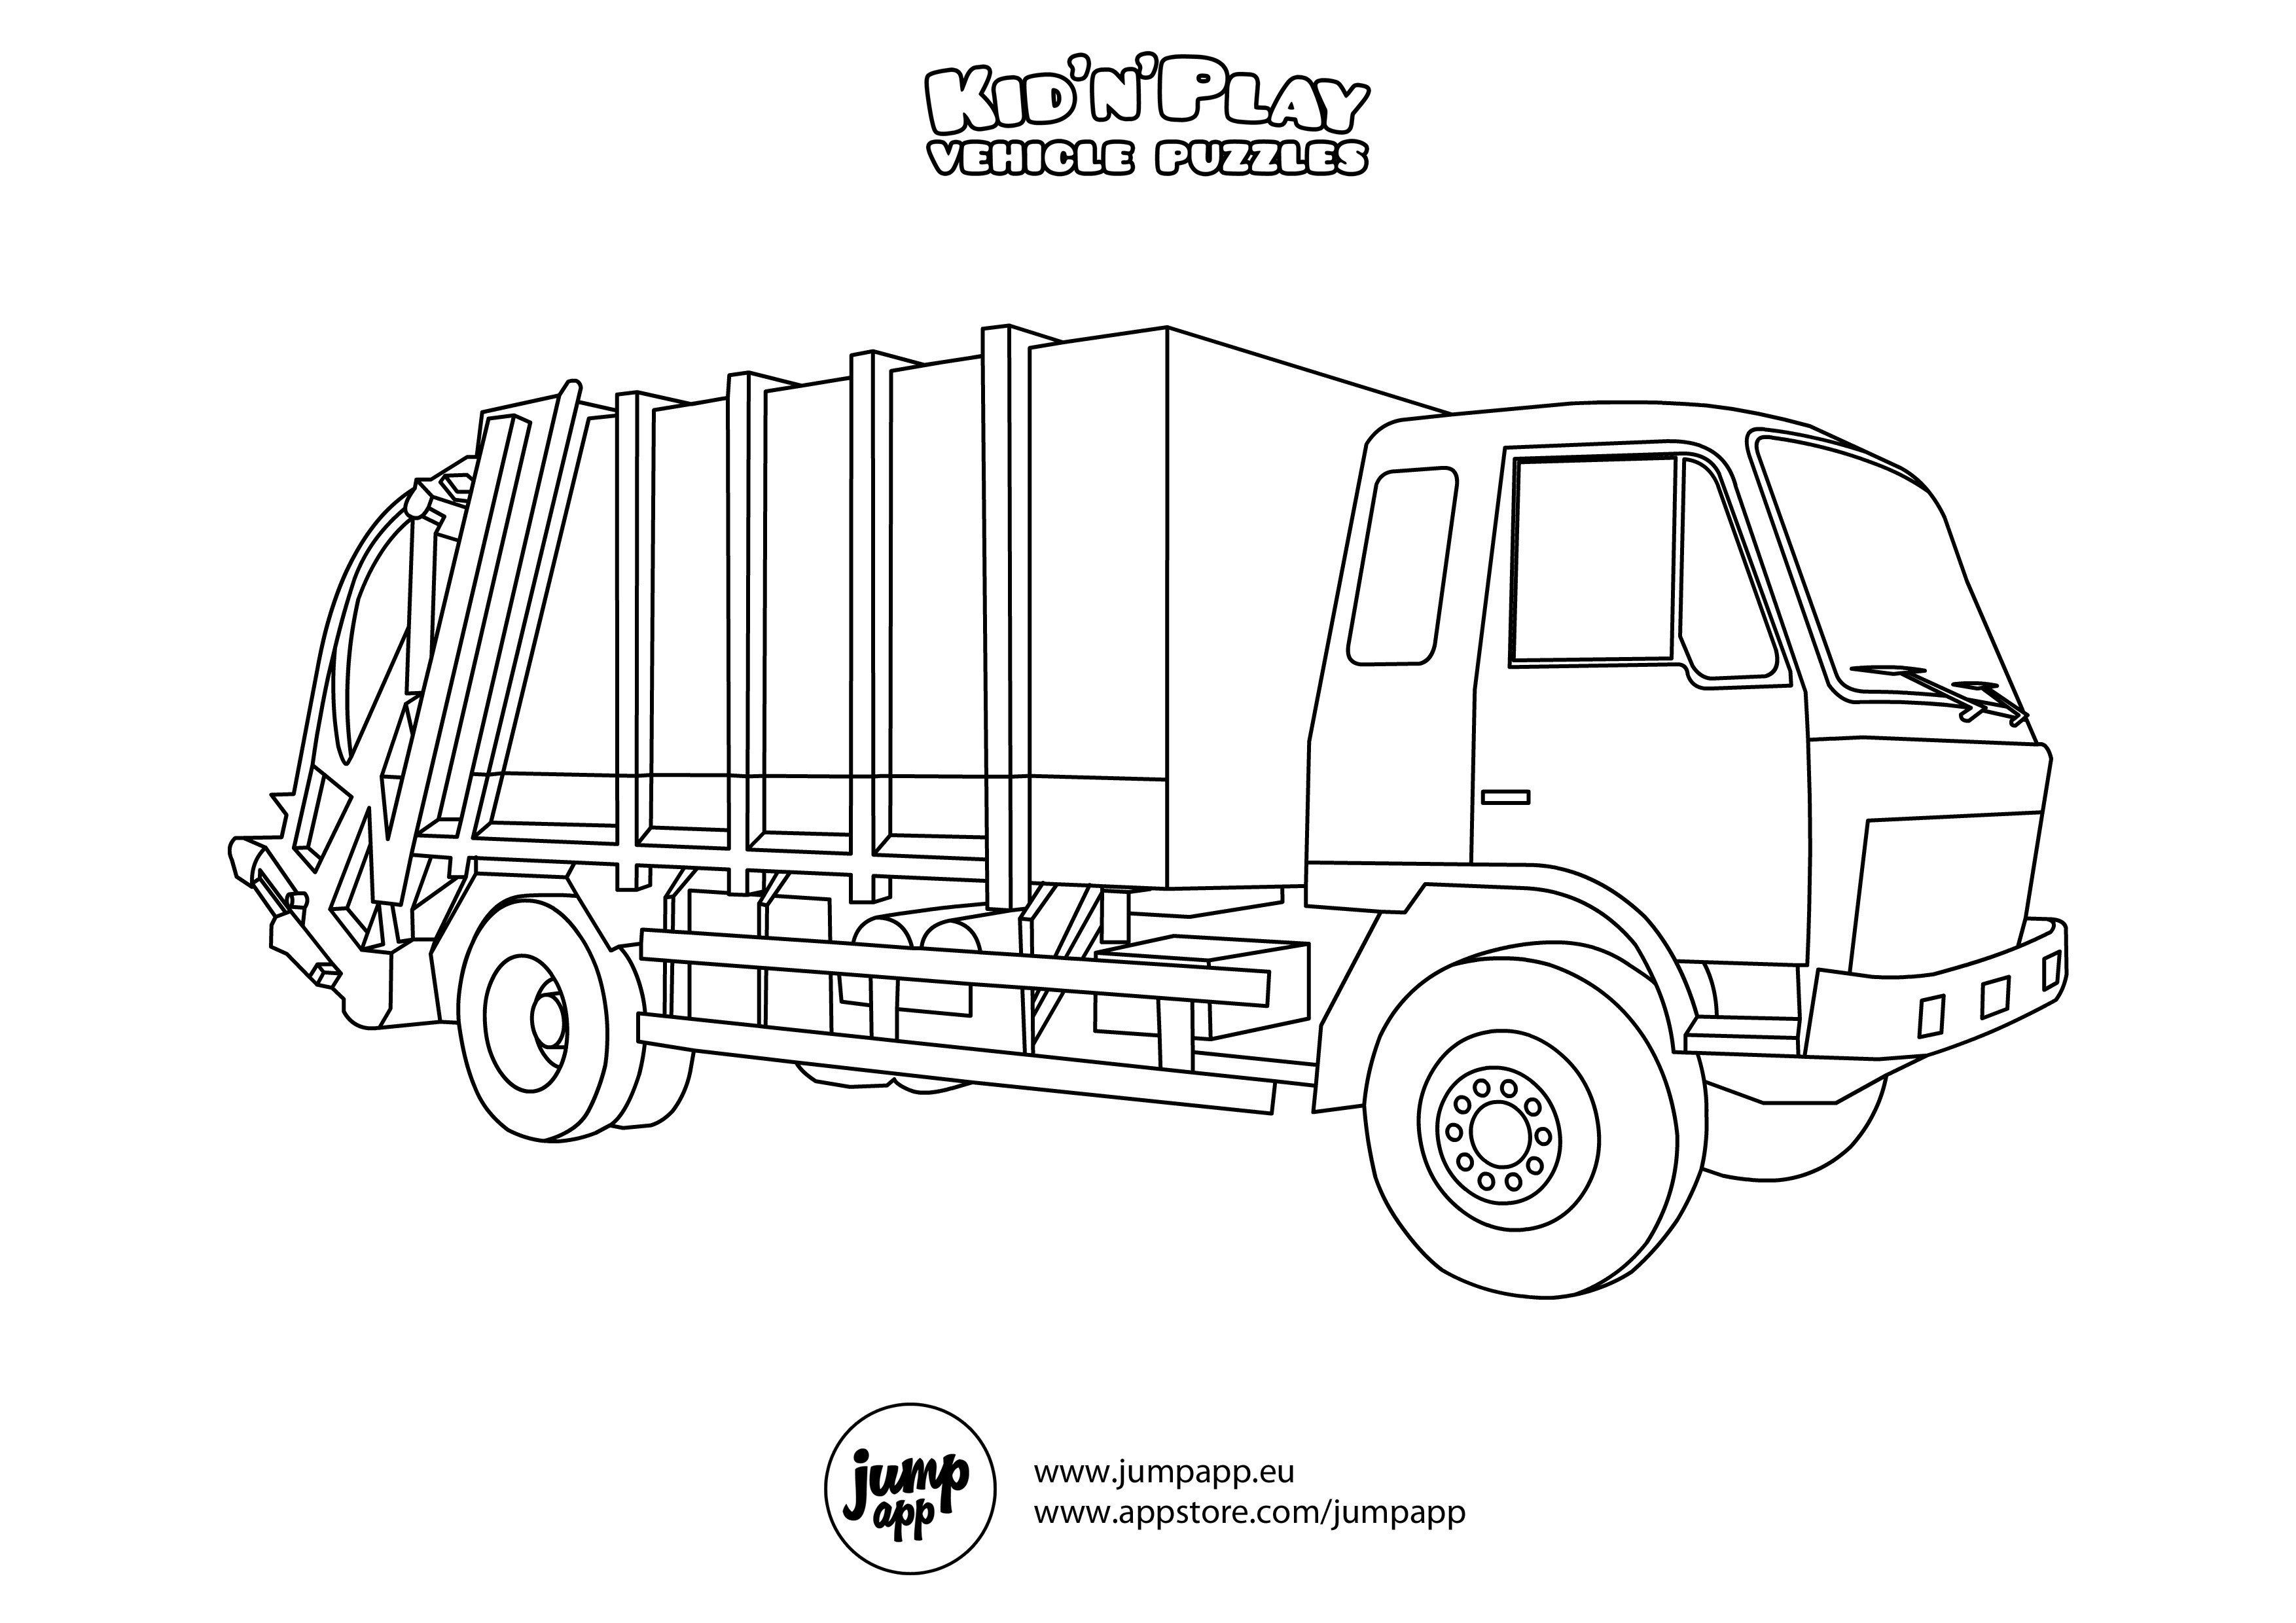 Free Printable Garbage Truck Coloring Page Download It At Https Museprintables Com Download Coloring Page Truck Coloring Pages Coloring Pages Garbage Truck